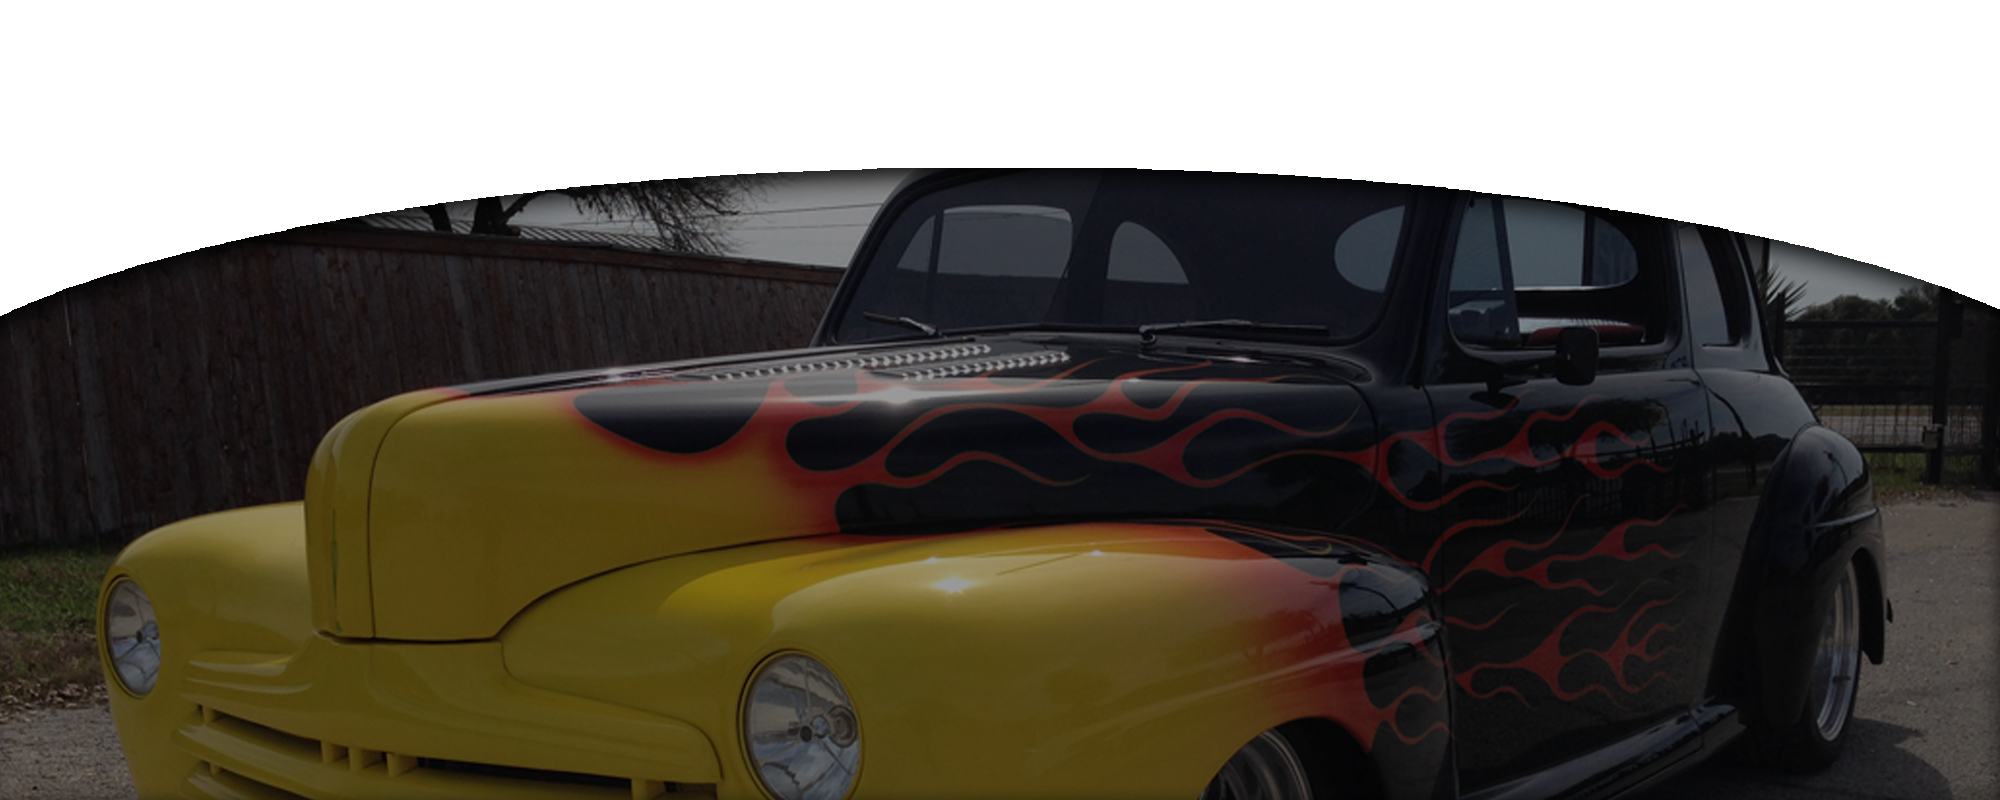 CAHILL CUSTOMS - Classic Cars For Sale - Boerne TX Dealer